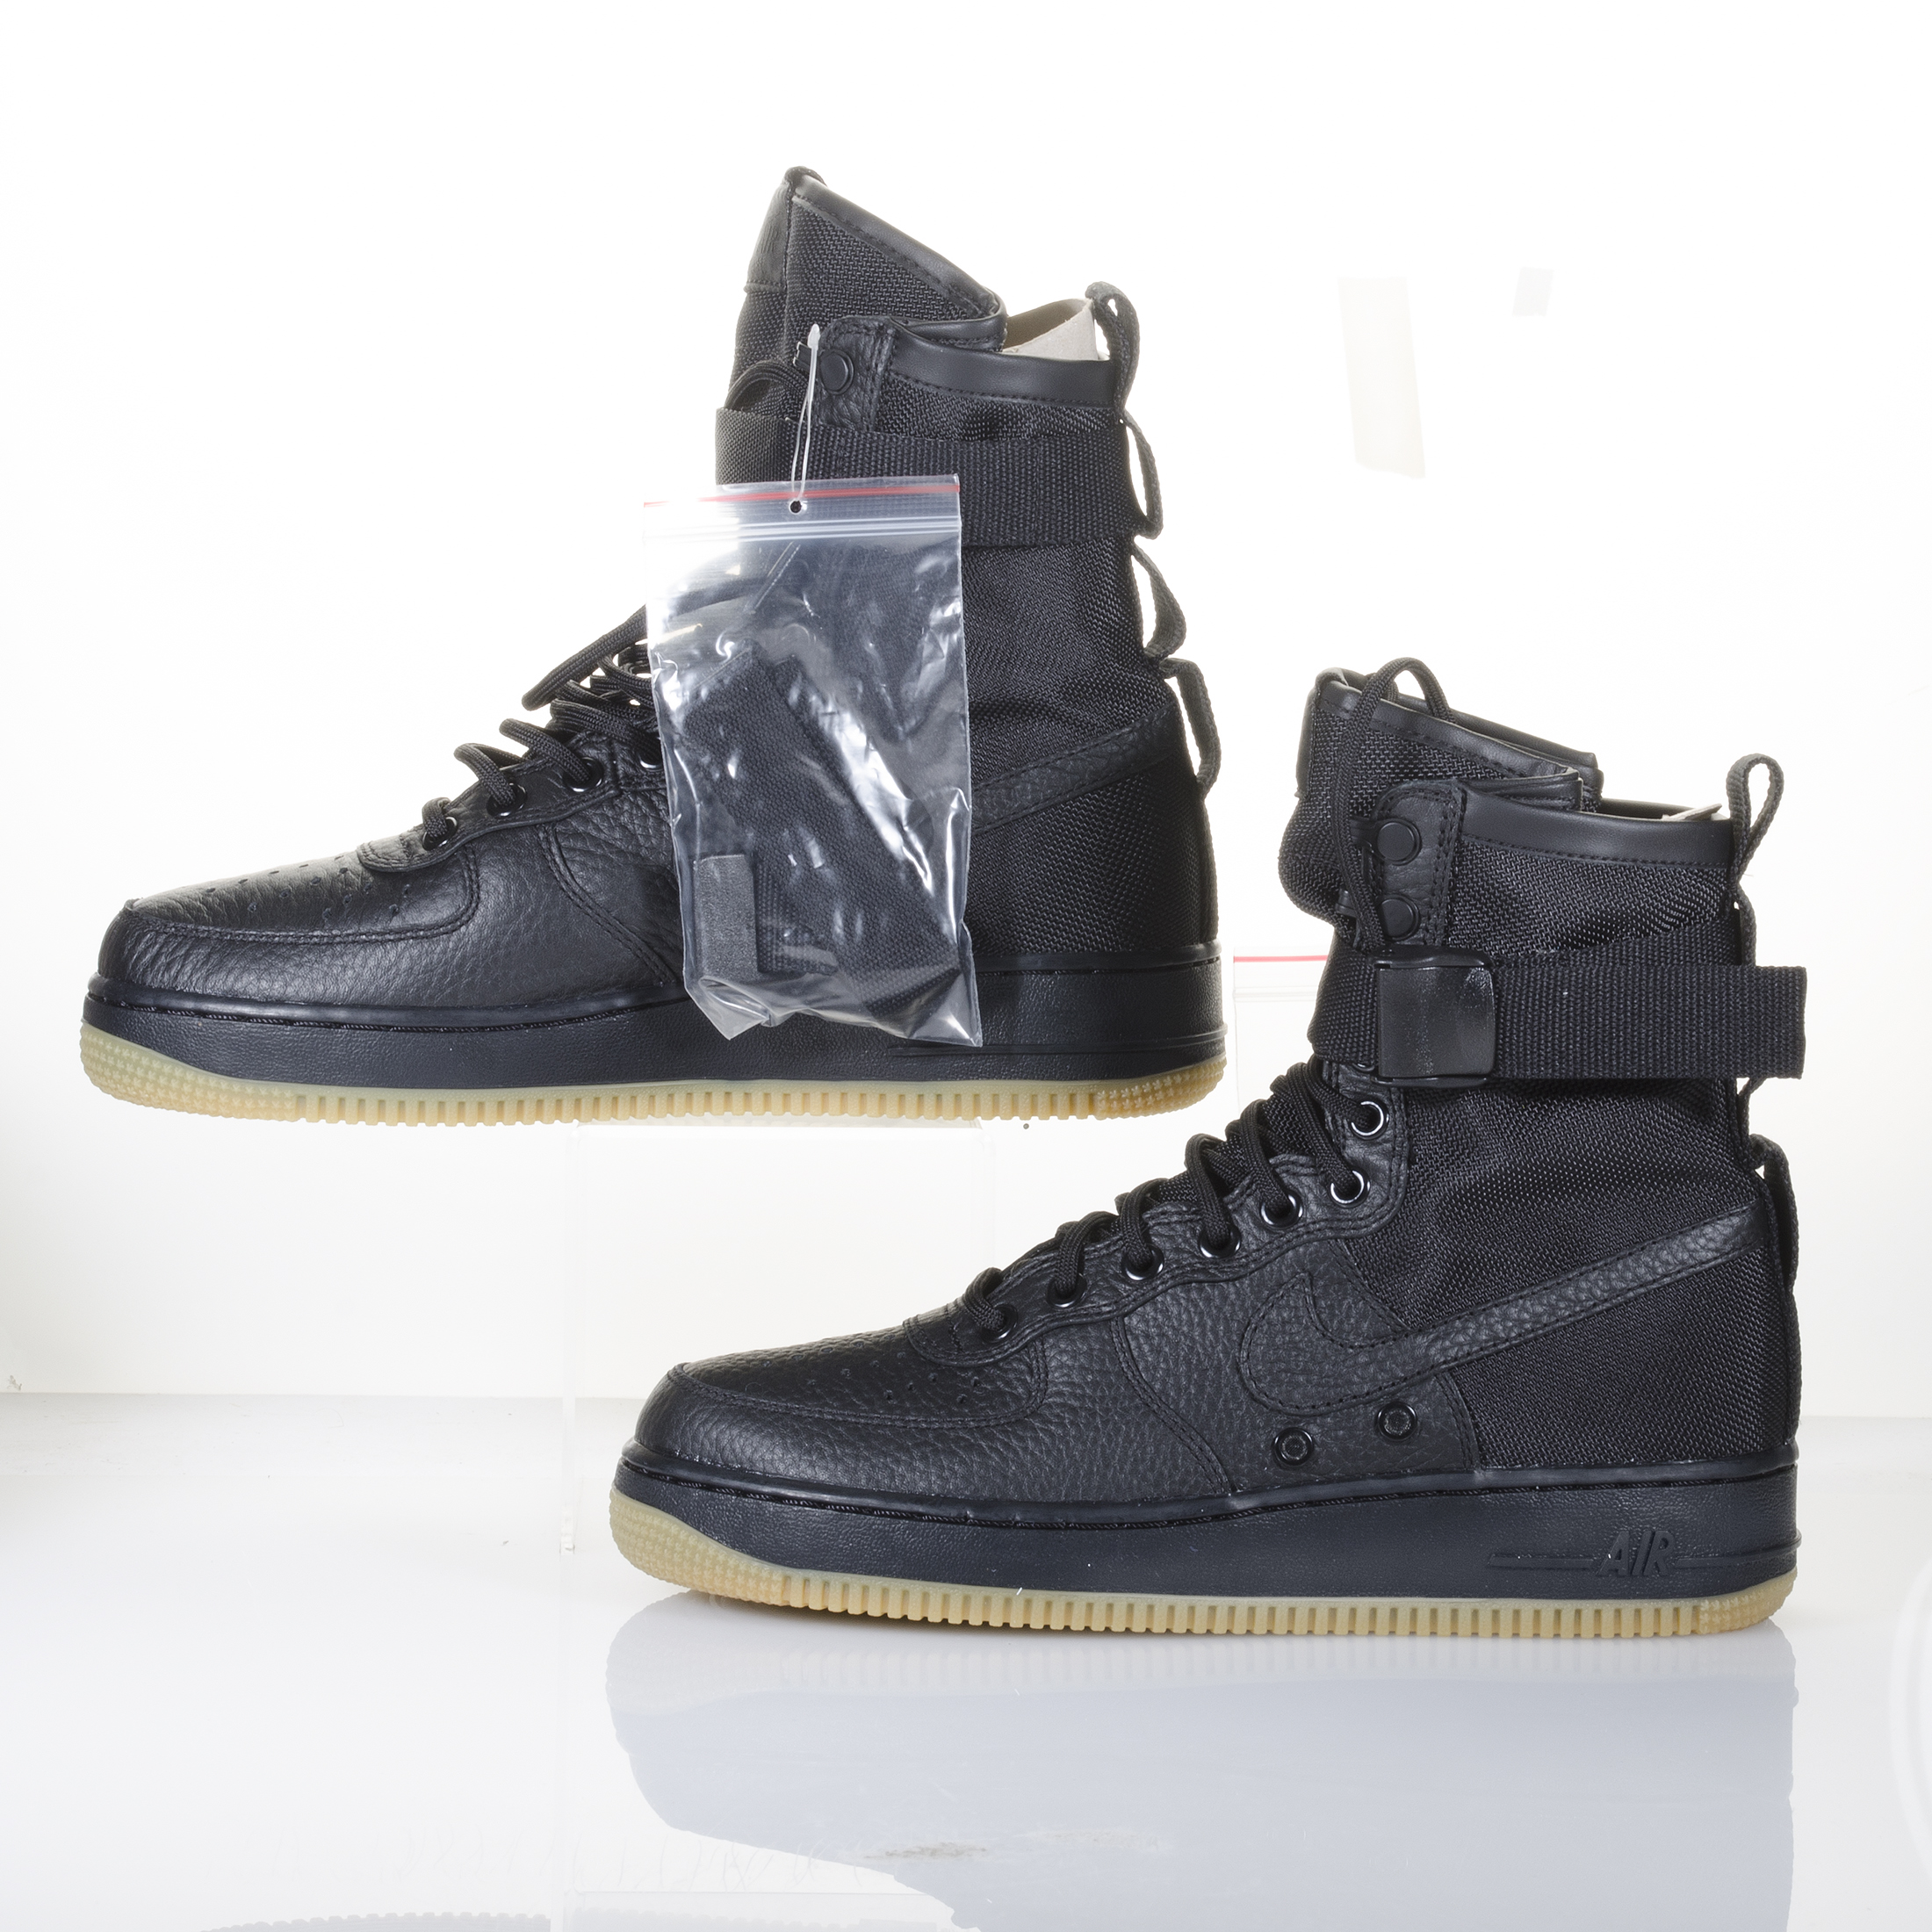 nike air force 1 sf af1 black gum high top supreme. Black Bedroom Furniture Sets. Home Design Ideas